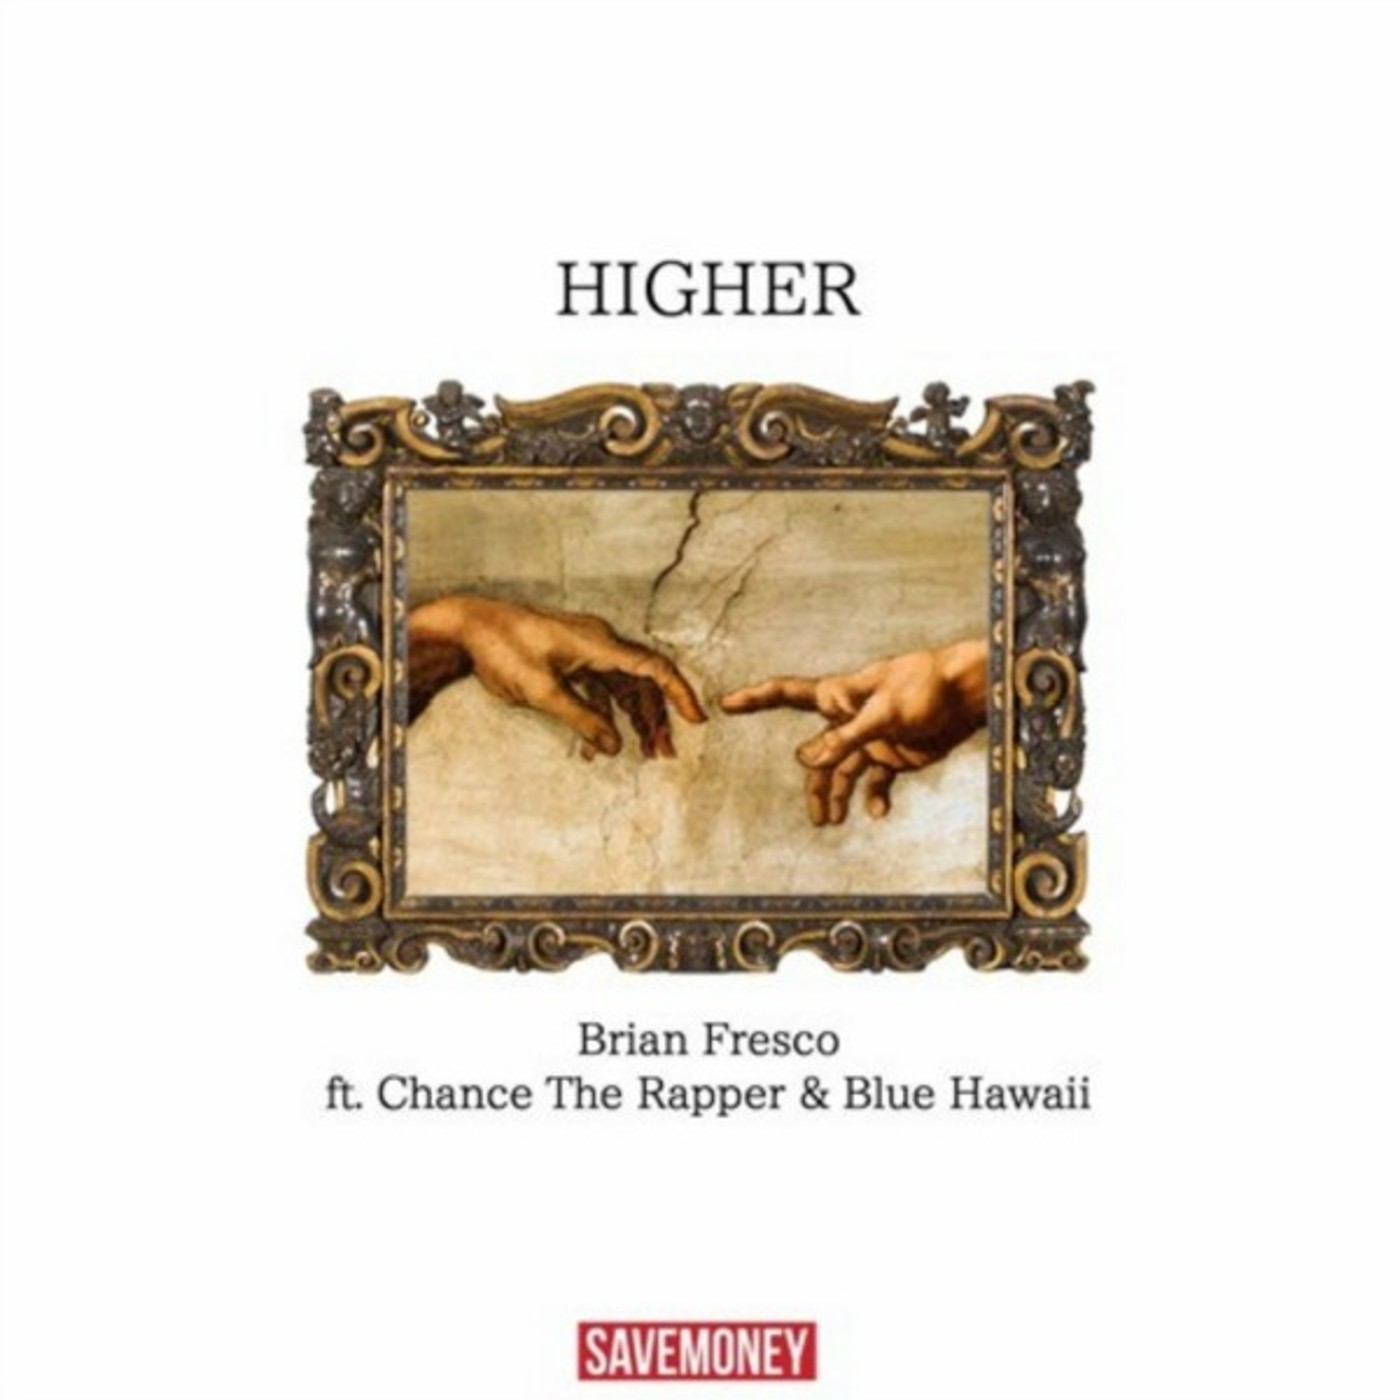 brian-fresco-higher-feat-chance-the-rapper